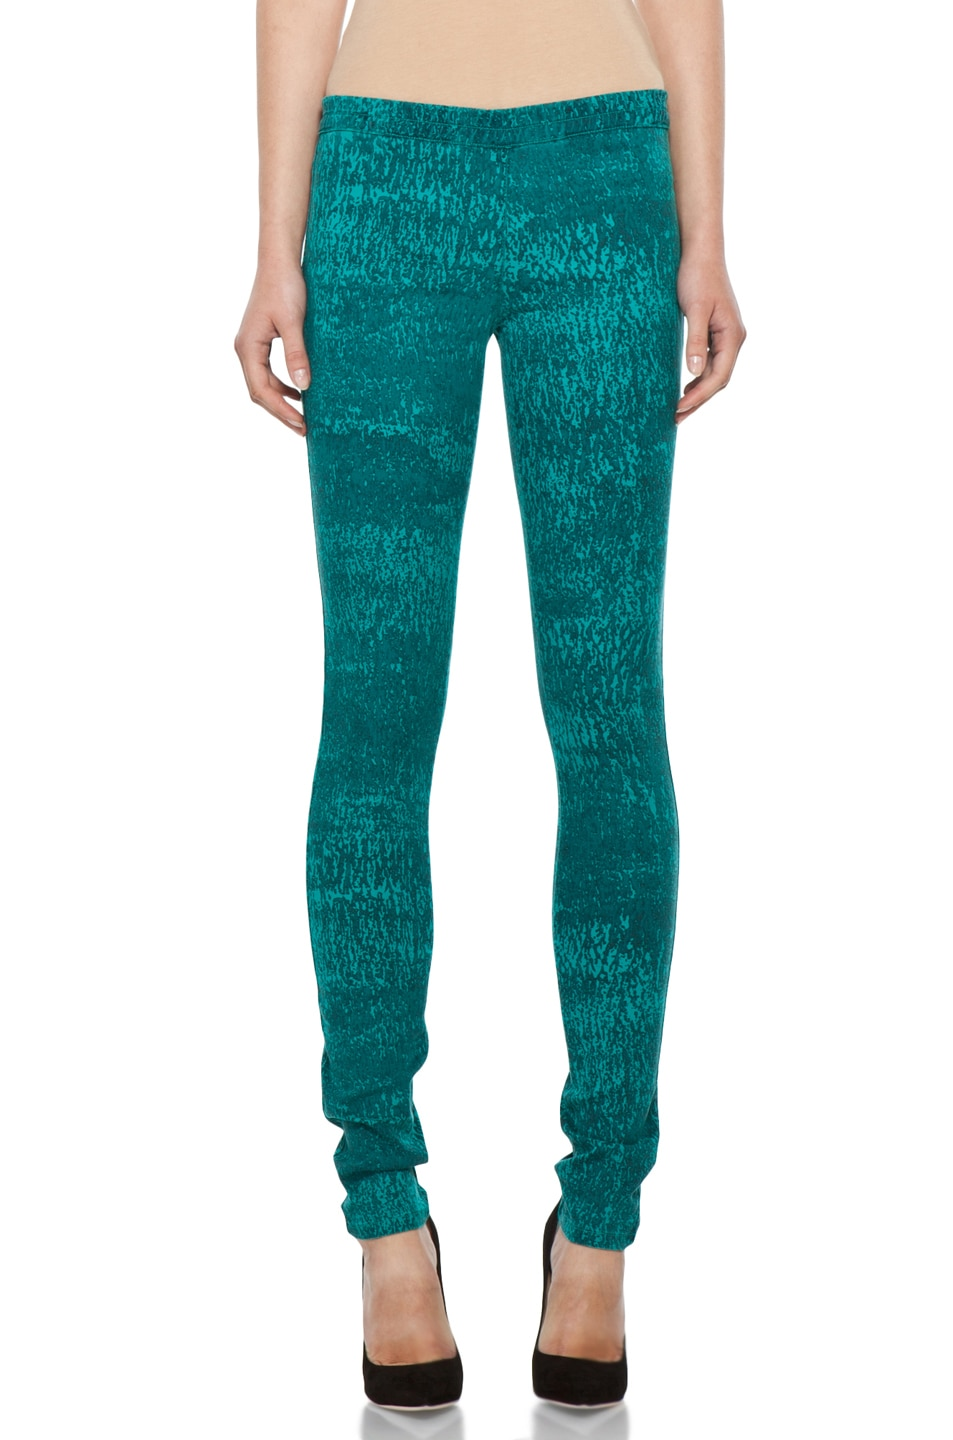 Image 1 of Kelly Wearstler Printed Stretch Jagger Pant in Malachite